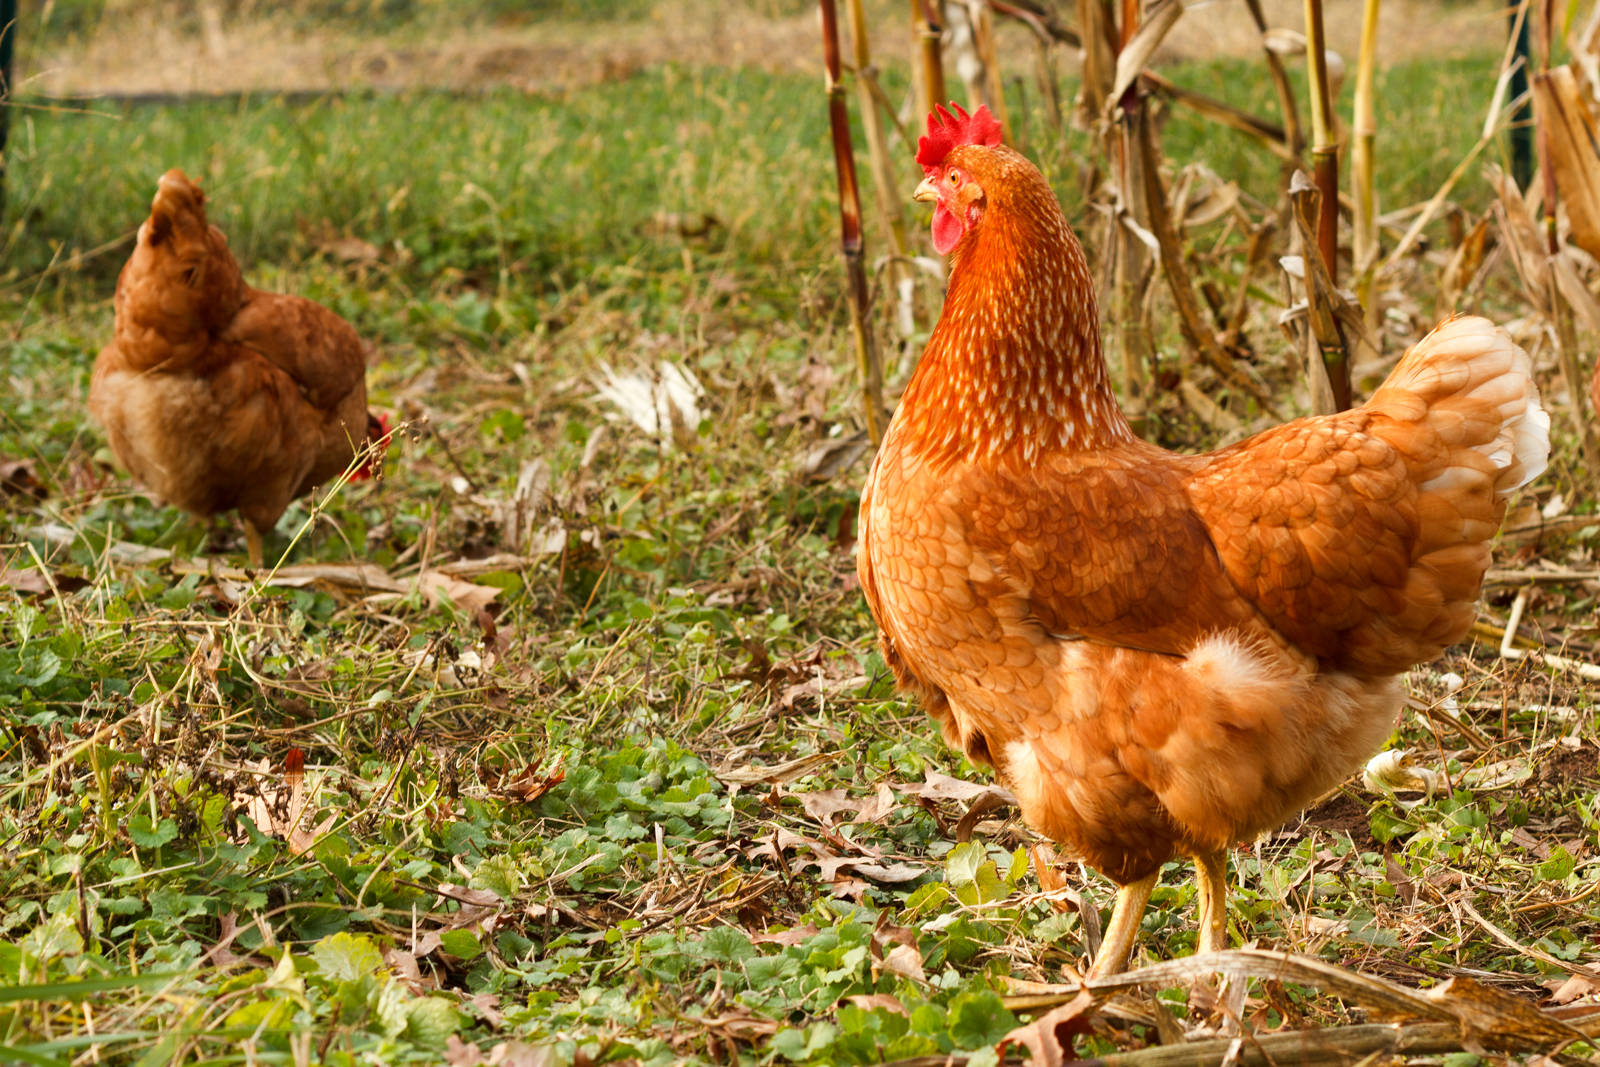 10 Lessons I've Learned While Fighting for the Freedom of Farmed Chickens